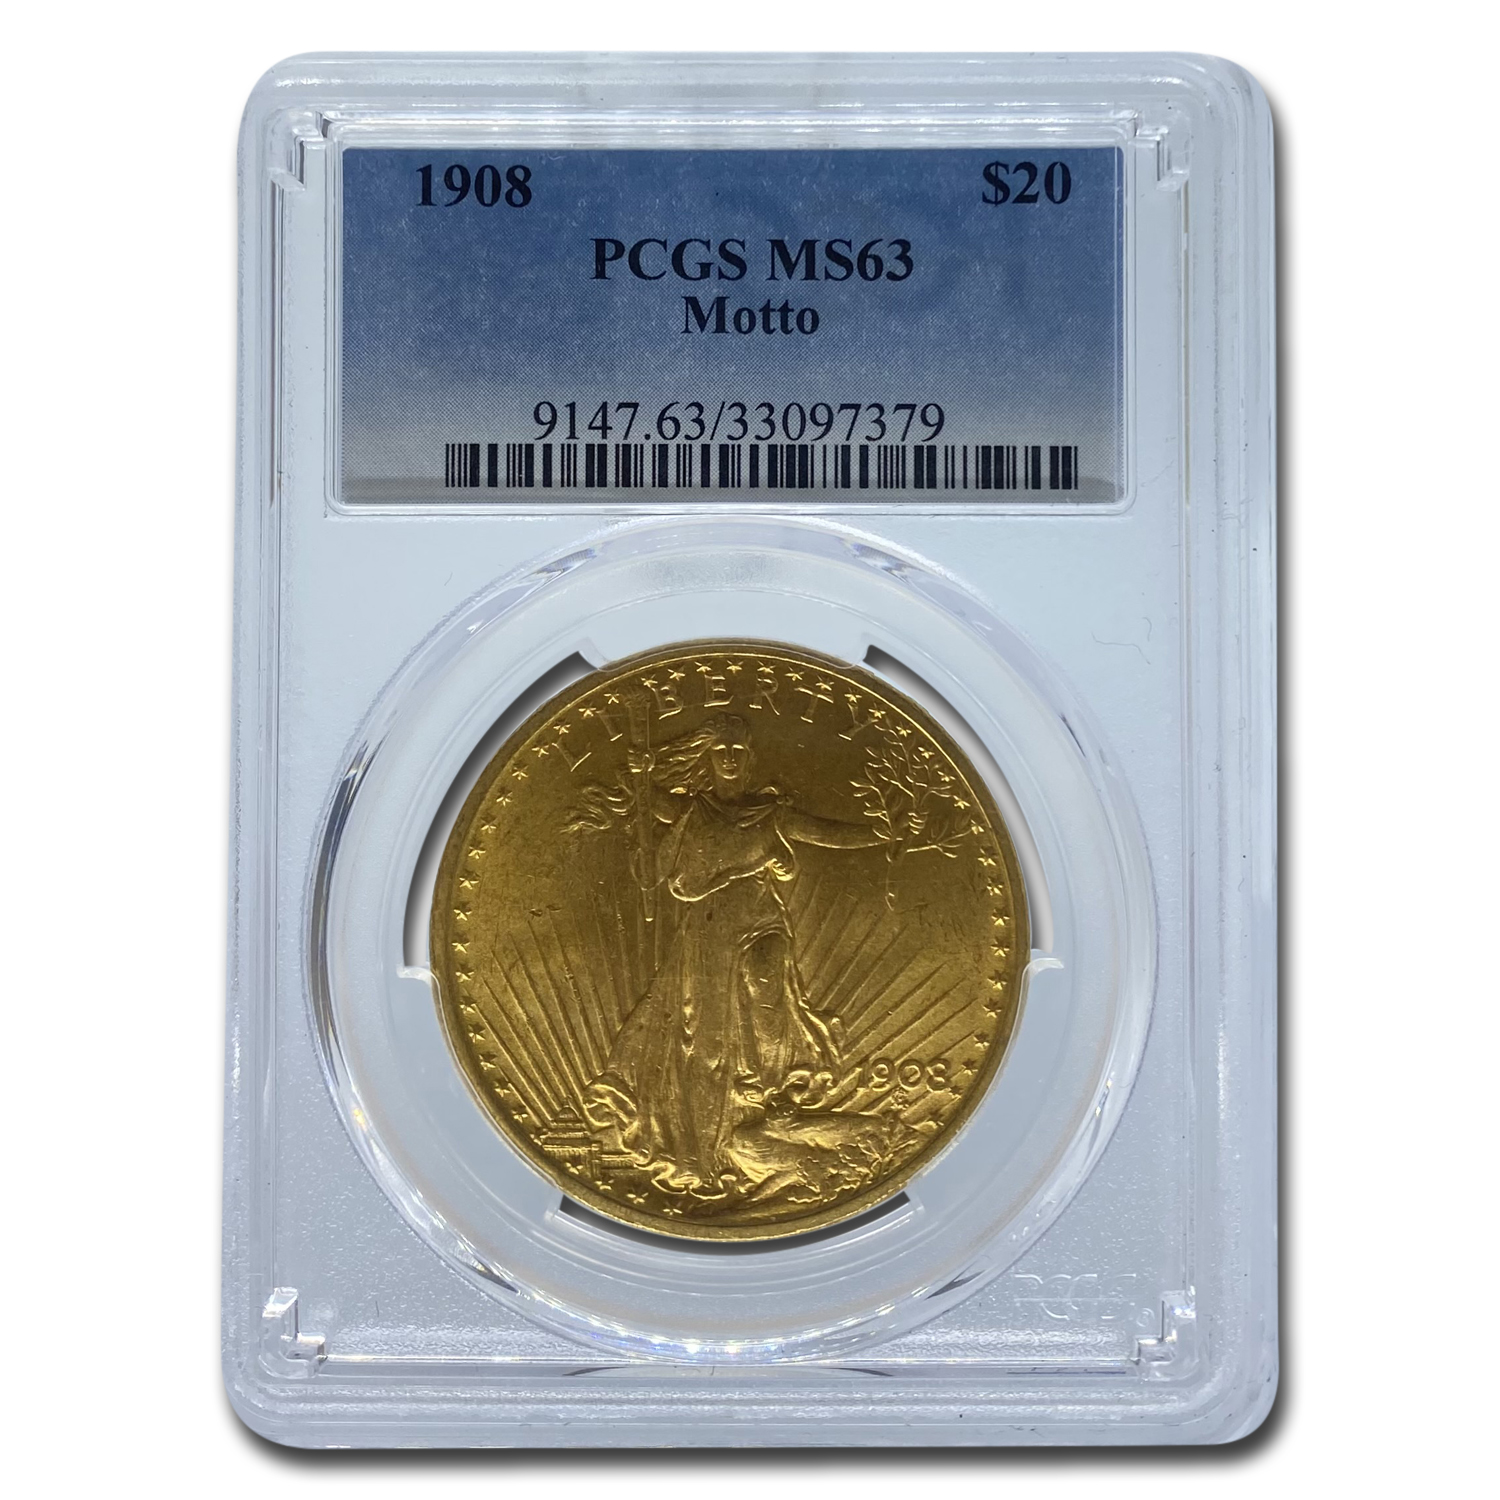 1908 $20 St. Gaudens Gold w/Motto MS-63 PCGS